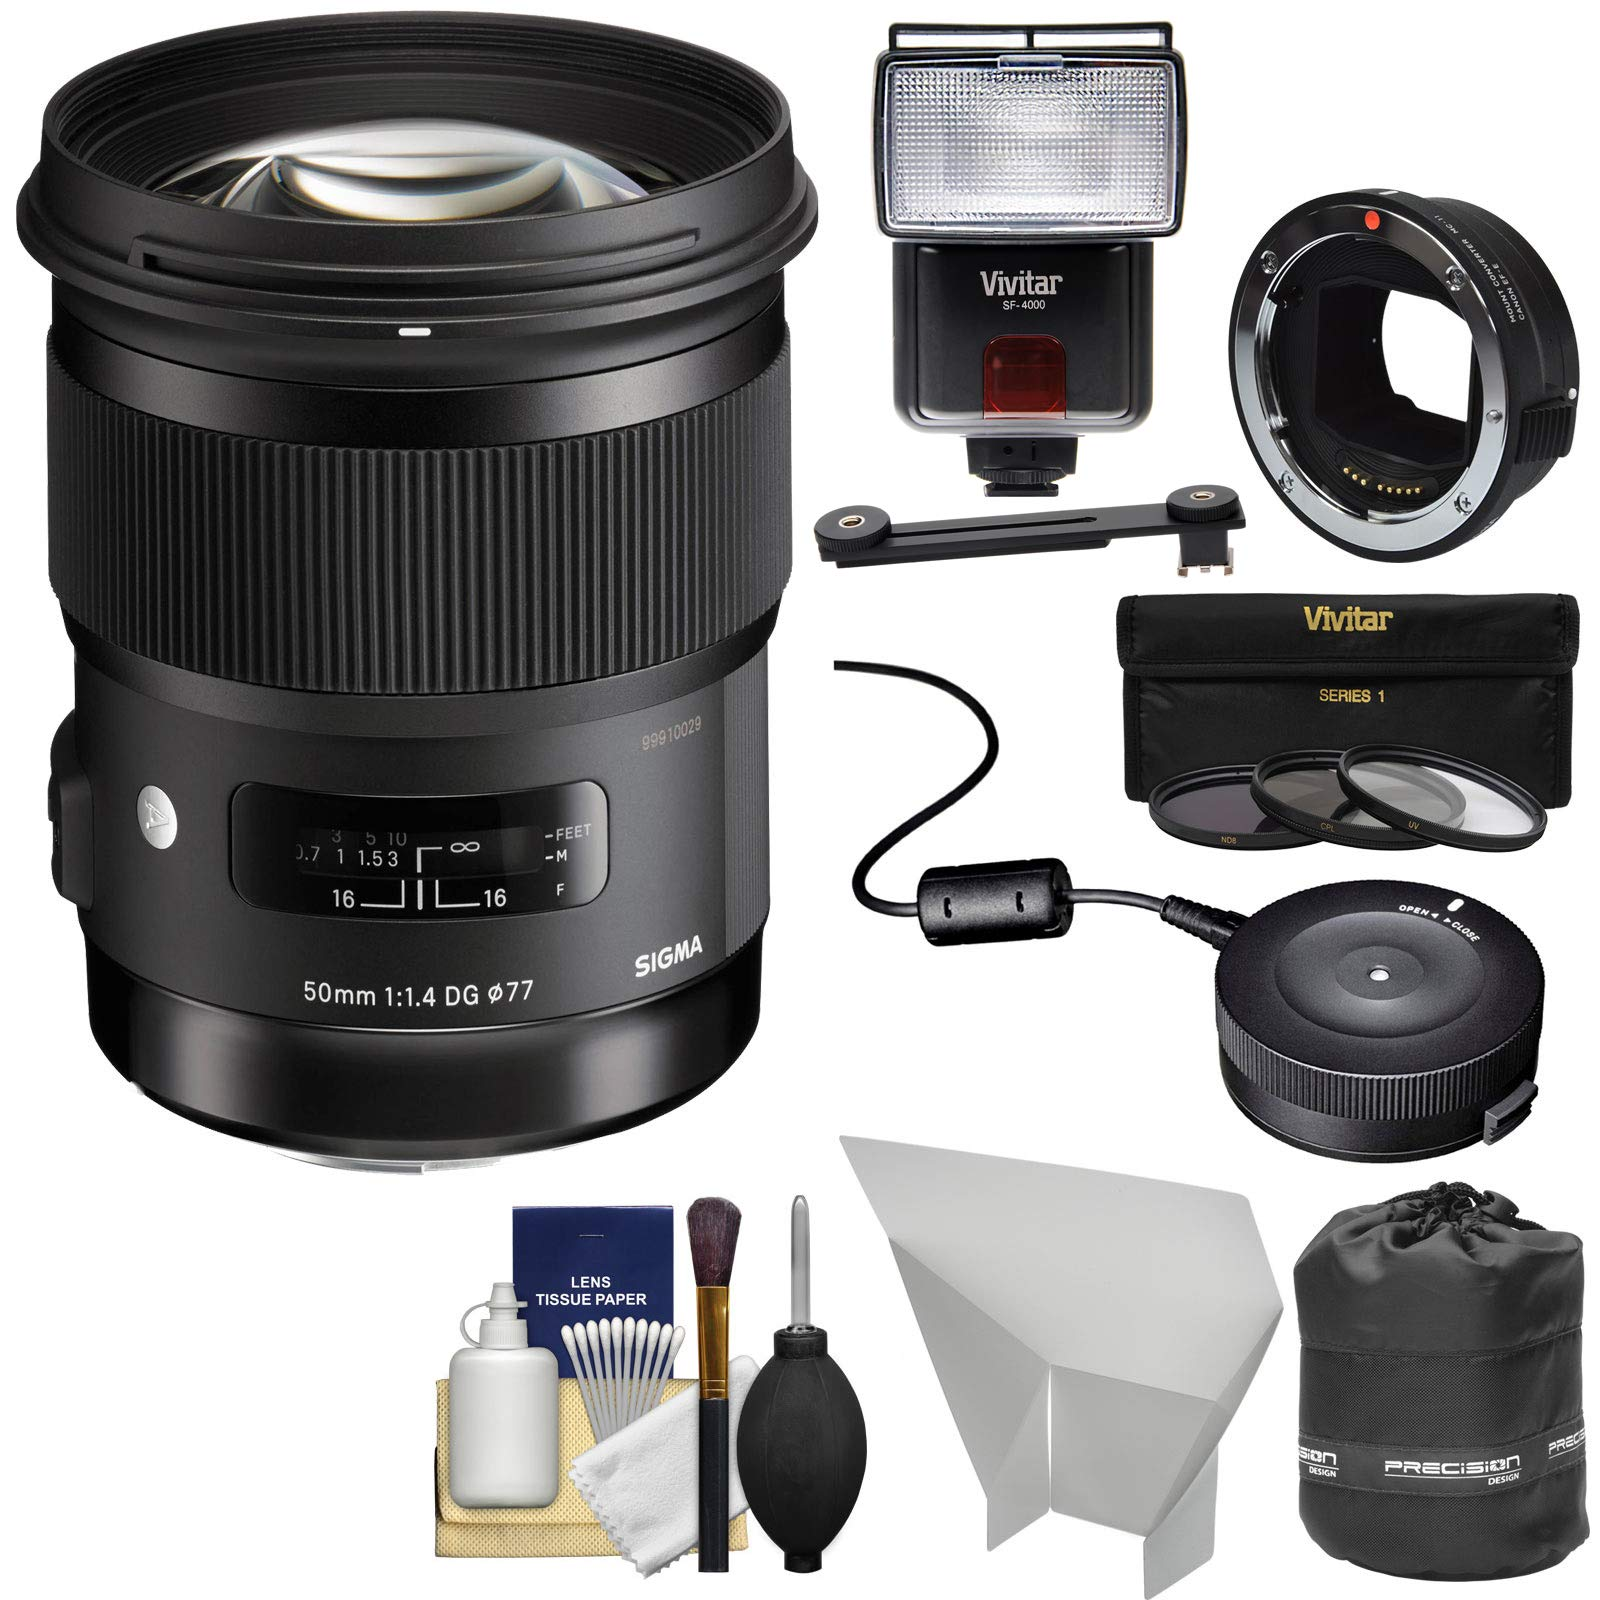 Sigma 50mm f/1.4 Art DG HSM Lens (for Canon EOS) with MC-11 Mount Converter + USB Dock + Flash + Kit for Sony FE & E-Mount Cameras